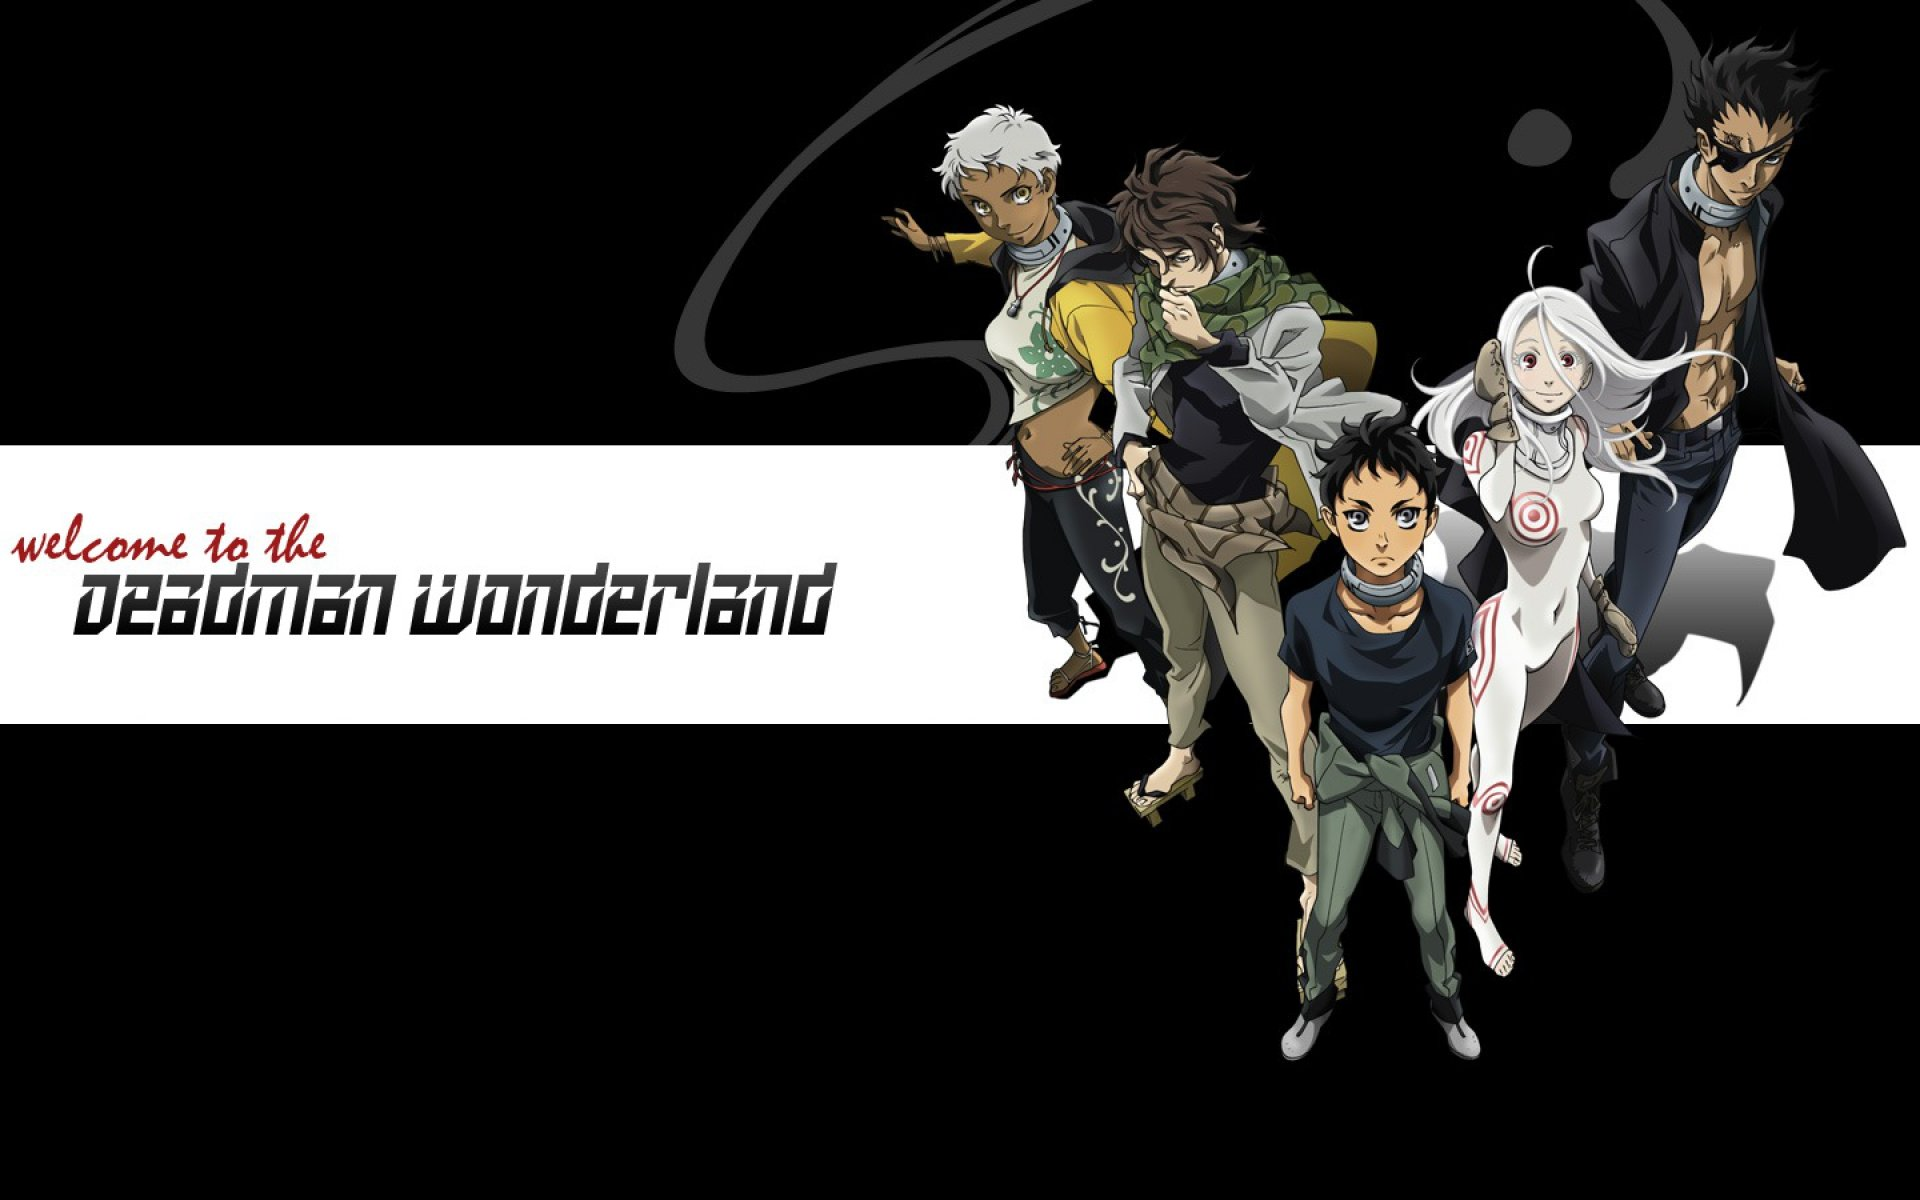 Awesome Deadman Wonderland free background ID:192100 for hd 1920x1200 desktop